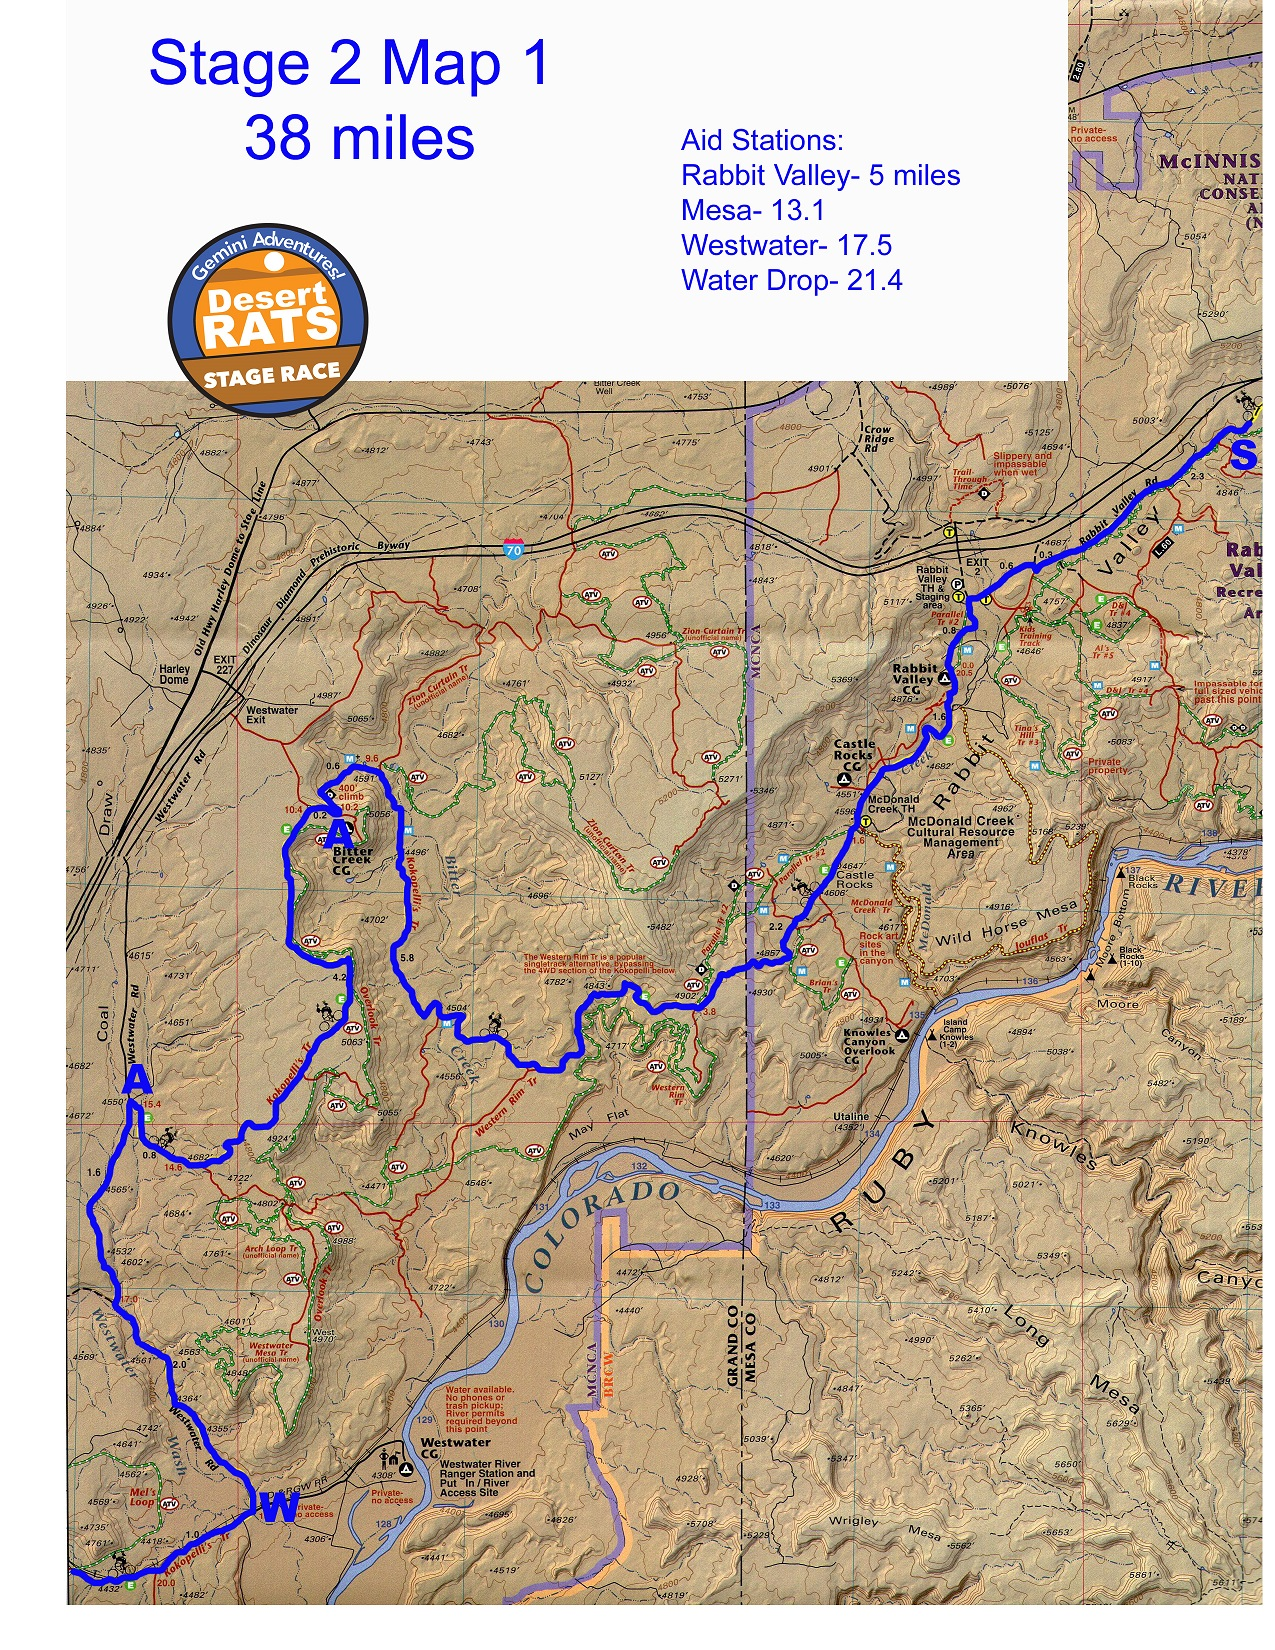 Gemini Adventures - Desert RATS Kokopelli Trail Stage Race